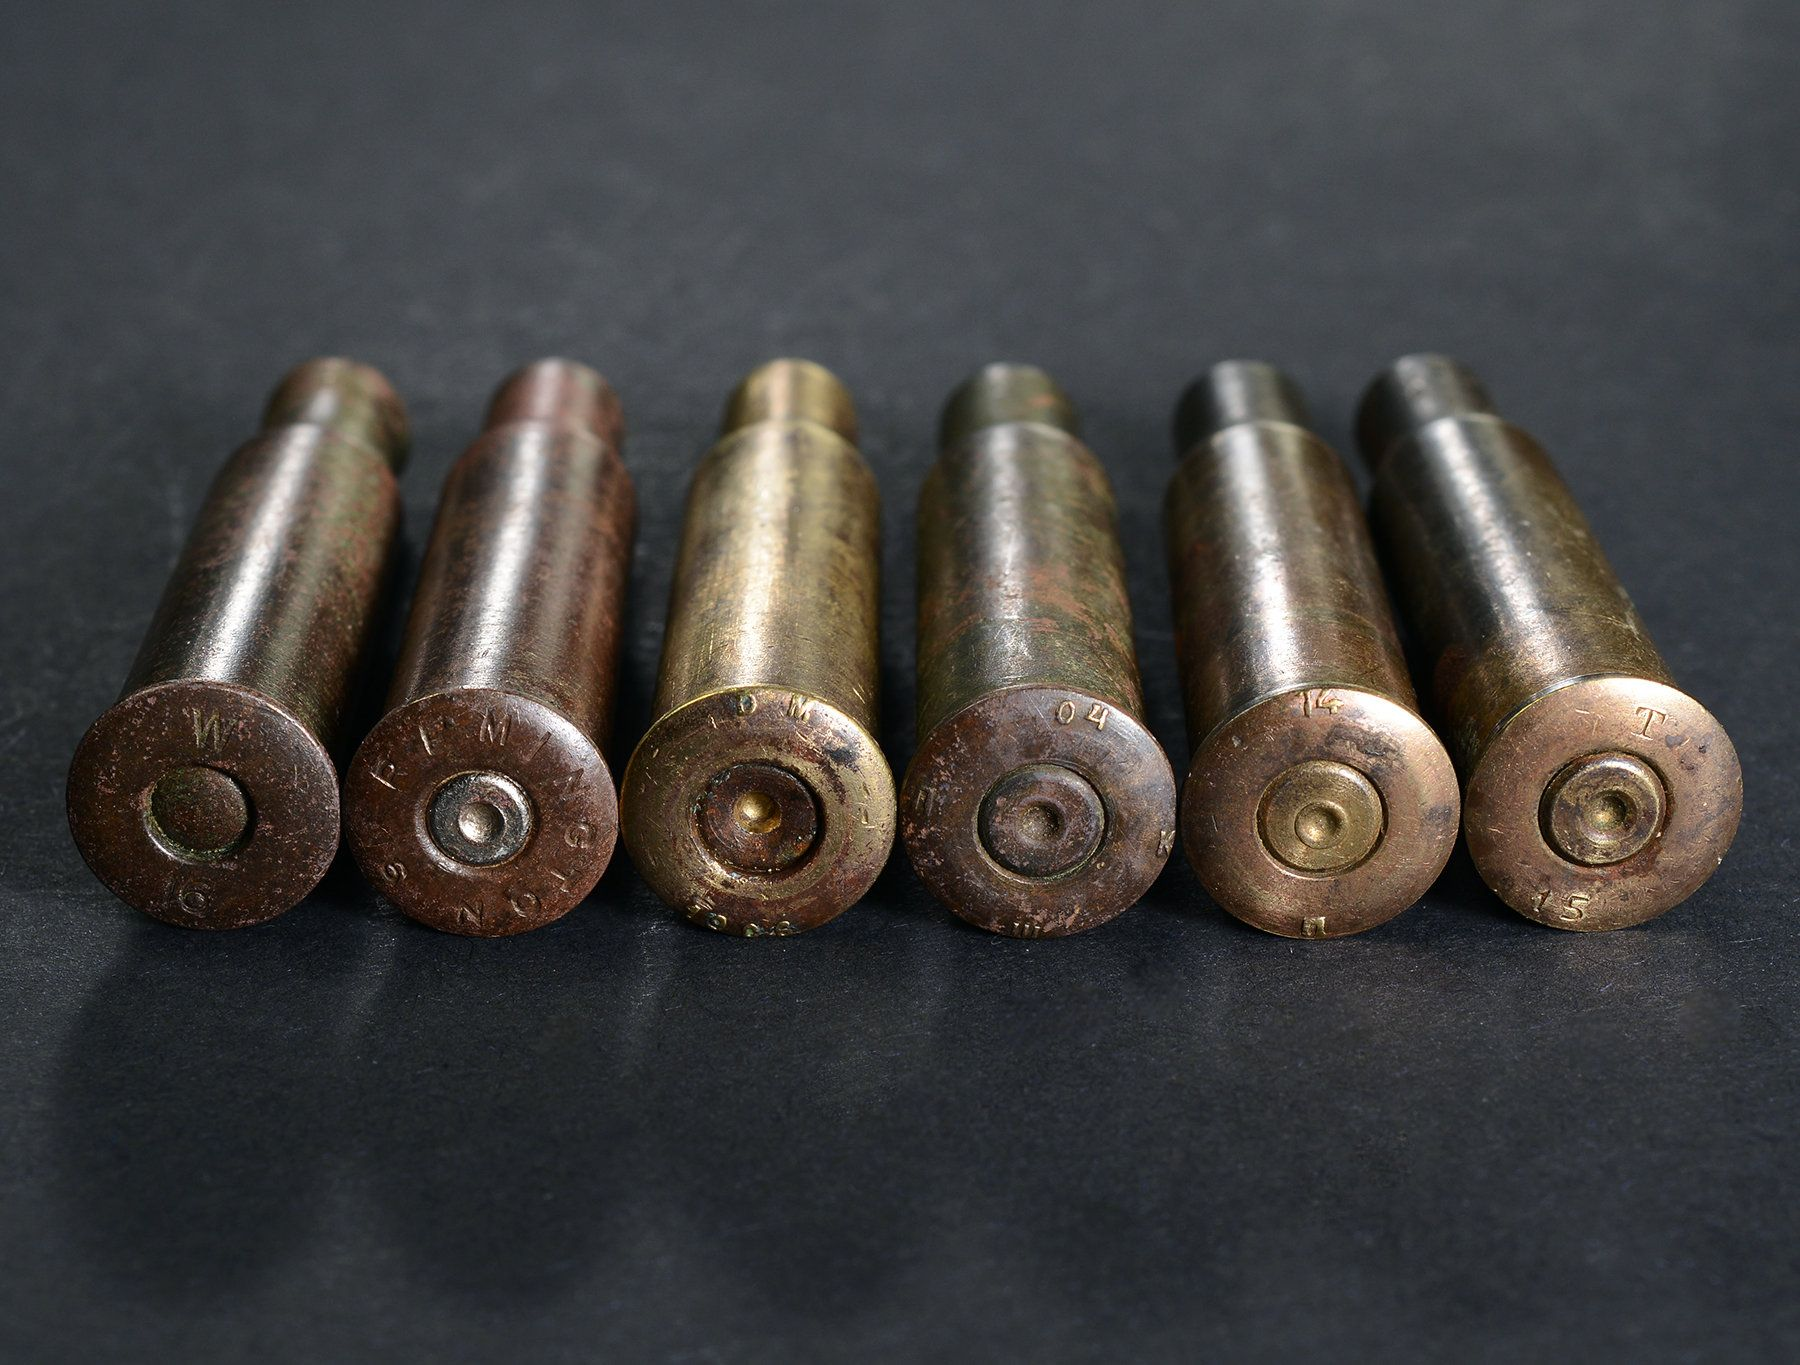 Cartridges: Mosin Nagant 7 62x54R Stamped W16, Remington, DM 1906